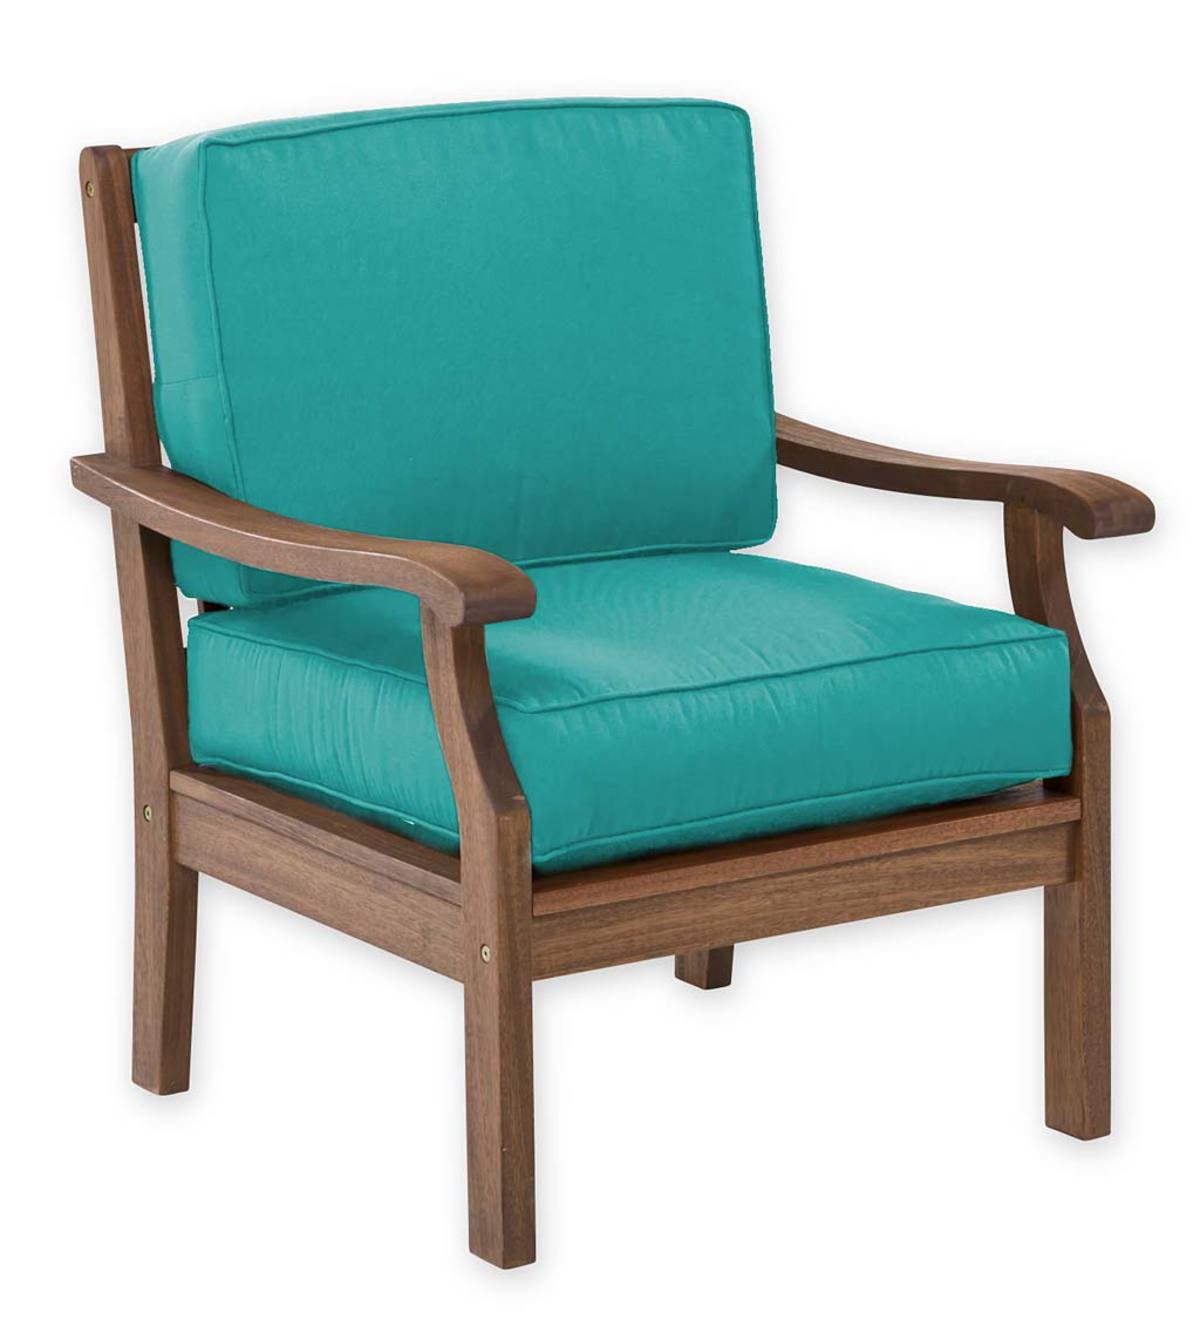 Claremont Chair with Cushions